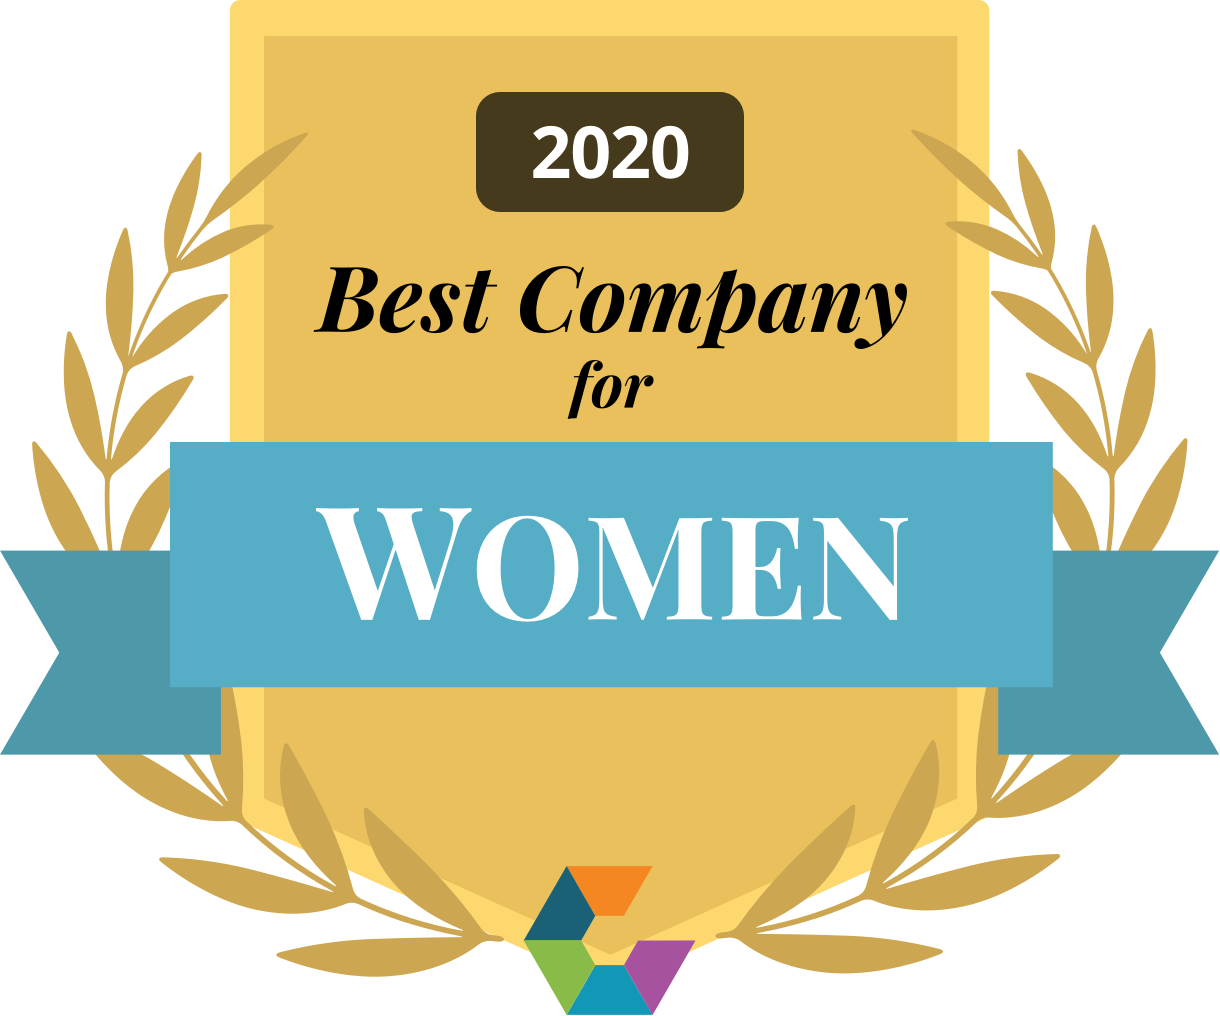 Best Company as rated by Female Employees